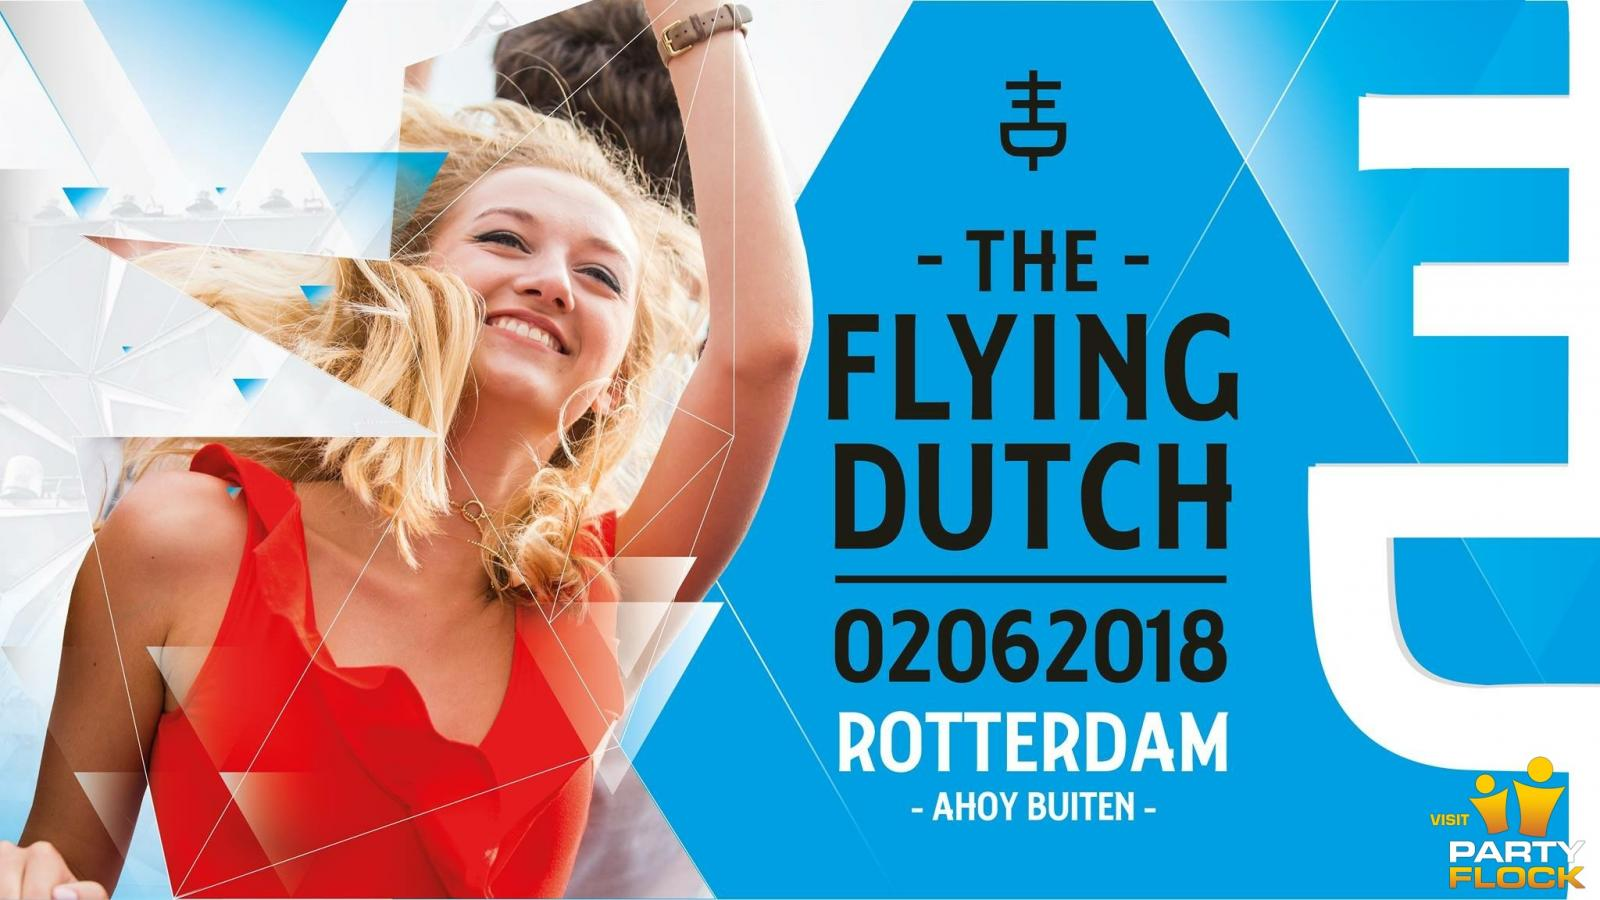 The Flying Dutch (2 juni 2018)